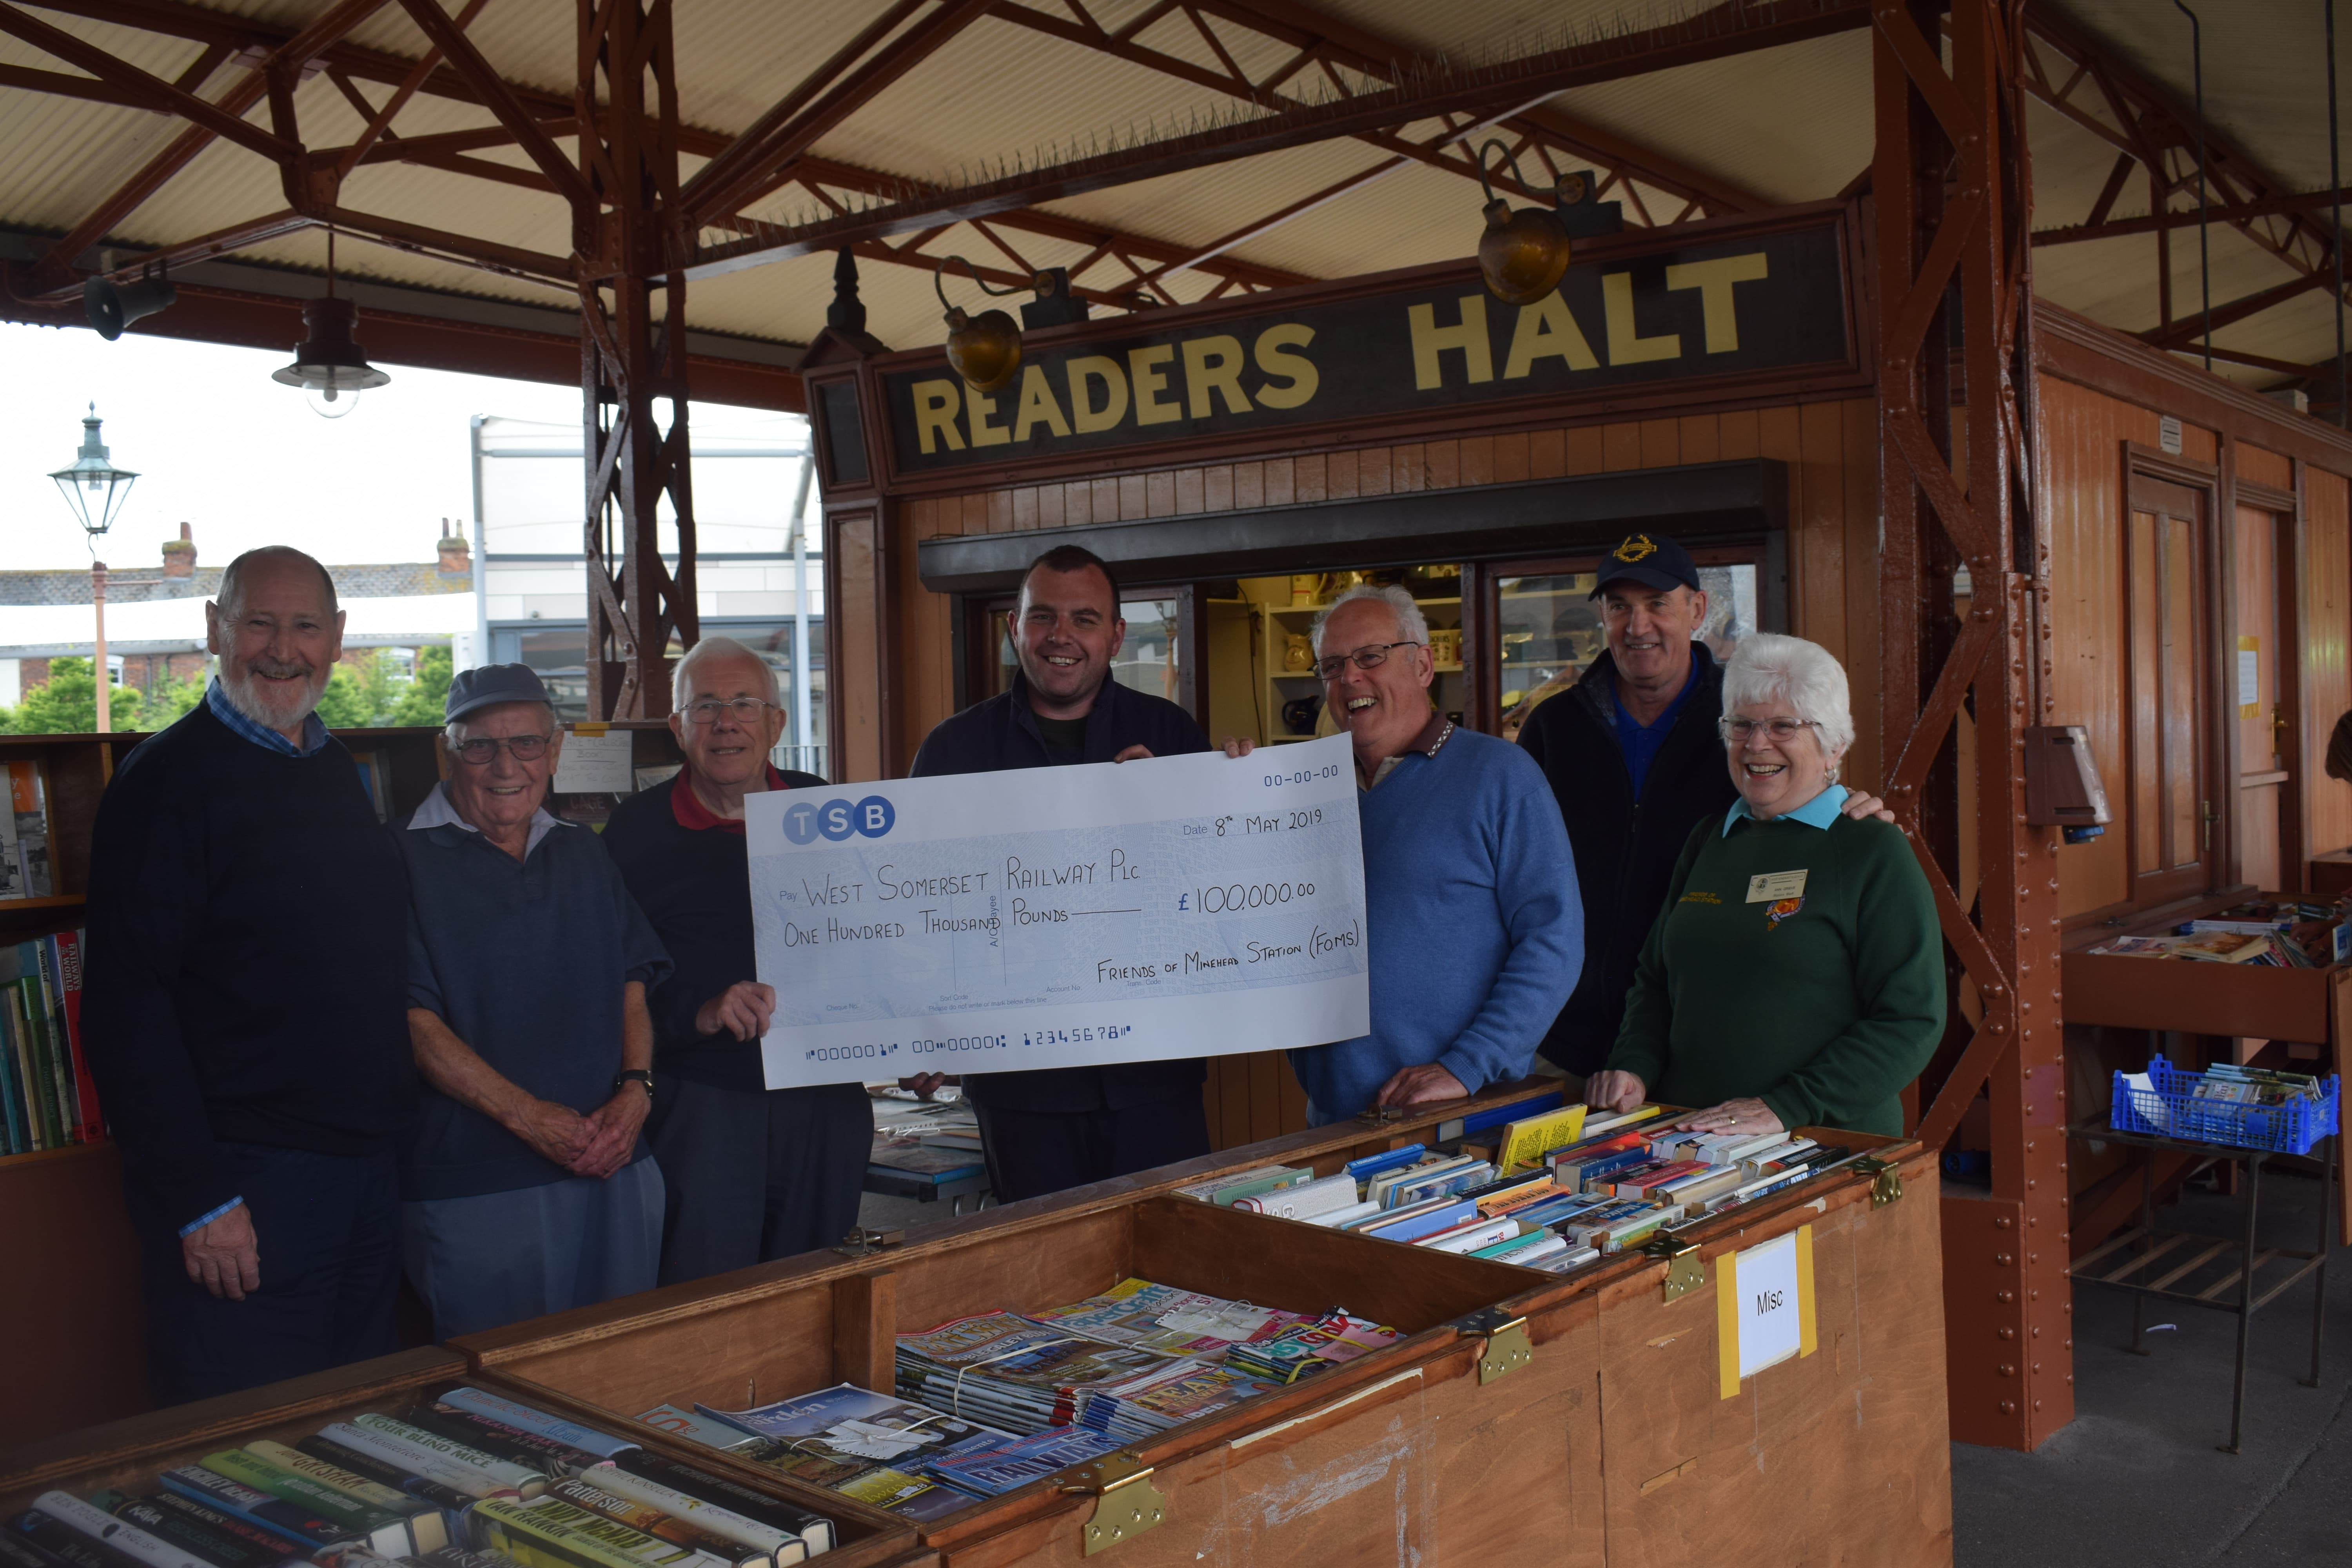 Friends of Minehead Station keeps the West Somerset Railway On Track